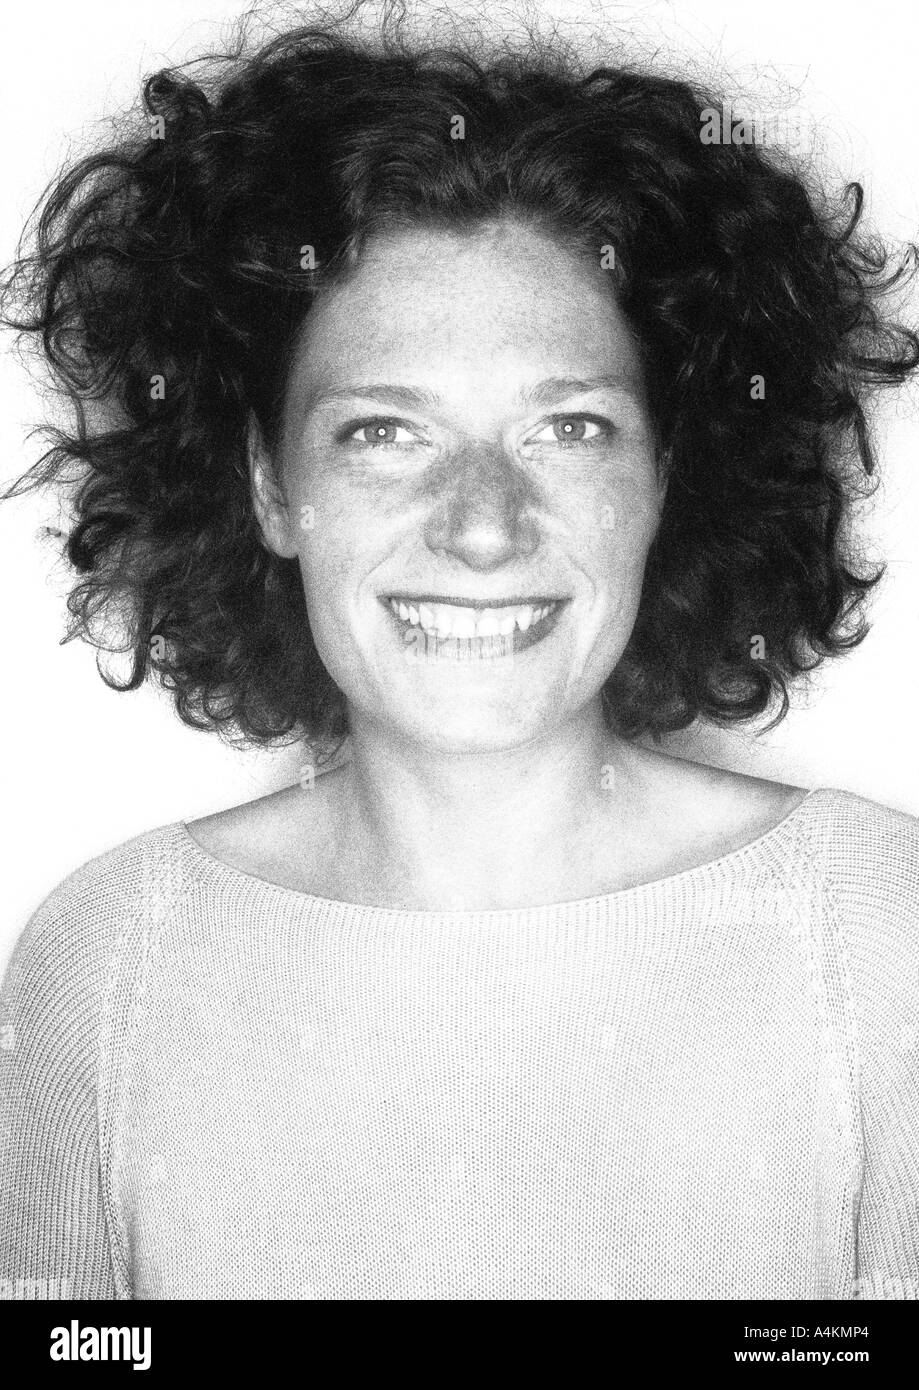 Woman smiling, portrait, b&w. - Stock Image